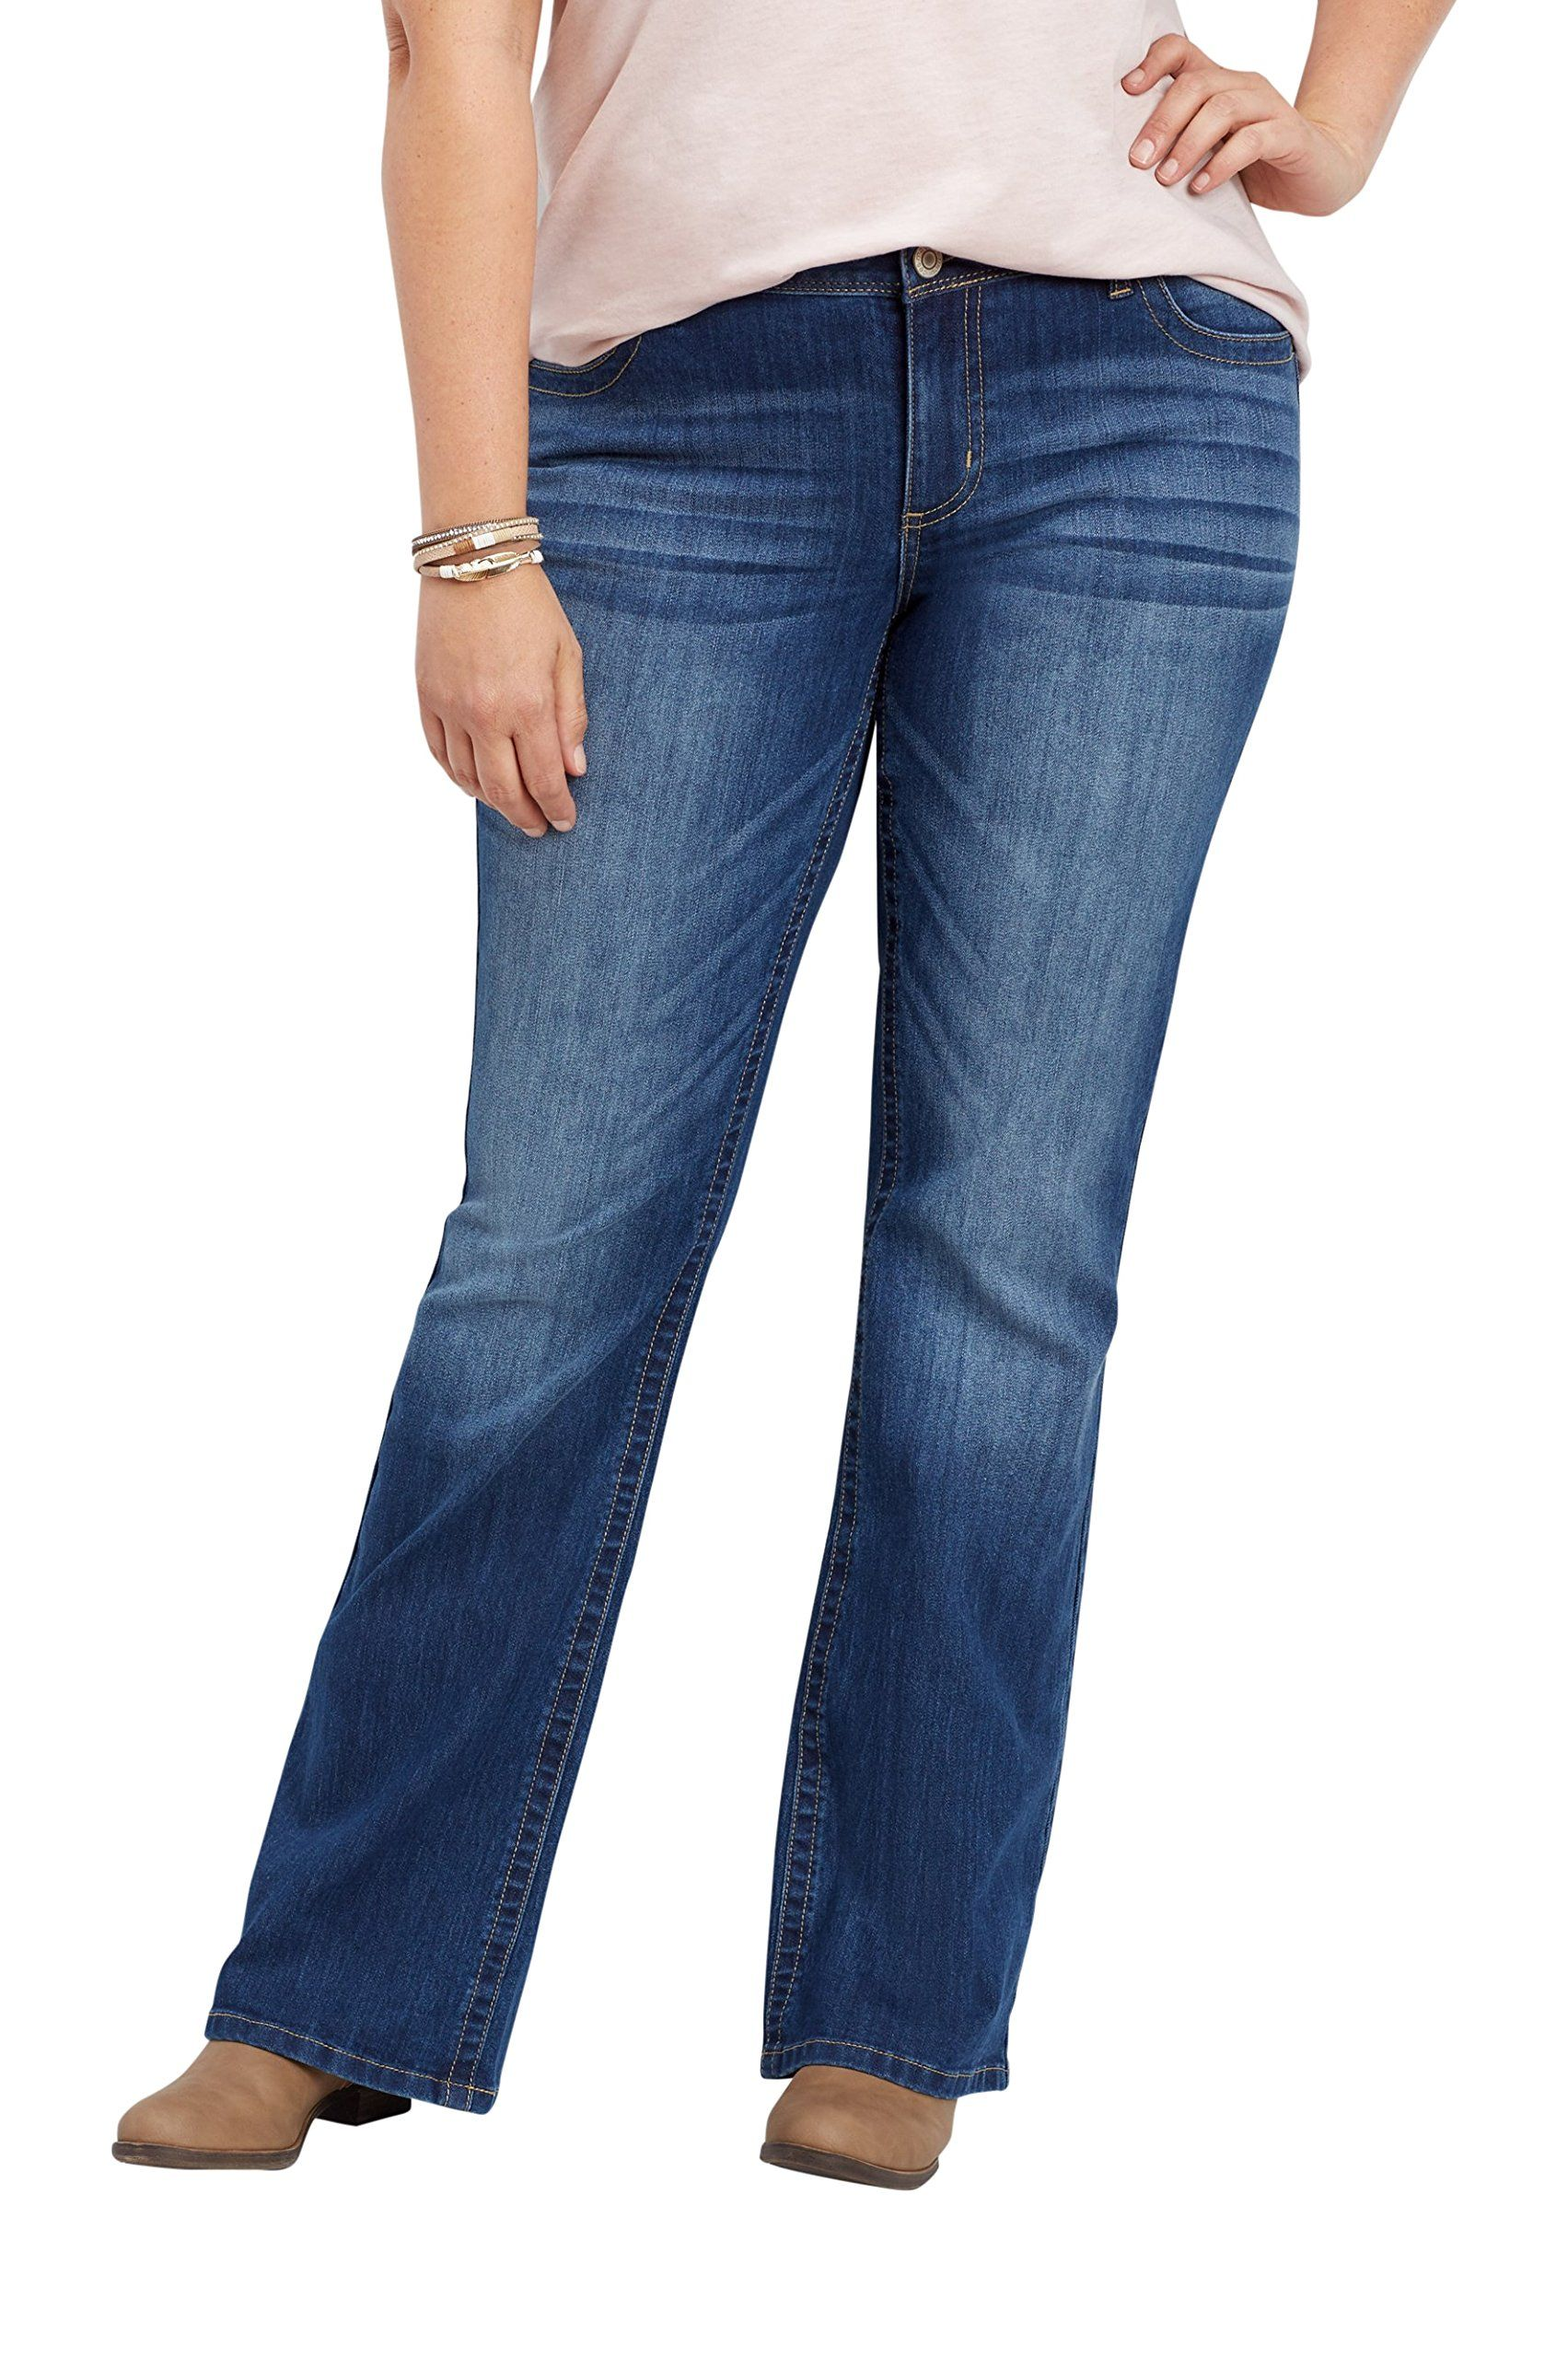 d80d2230464 maurices Womens Plus Size Denimflex Medium Wash Bootcut Jean 18W Medium  Sandblast * See this great product. (This is an affiliate link)